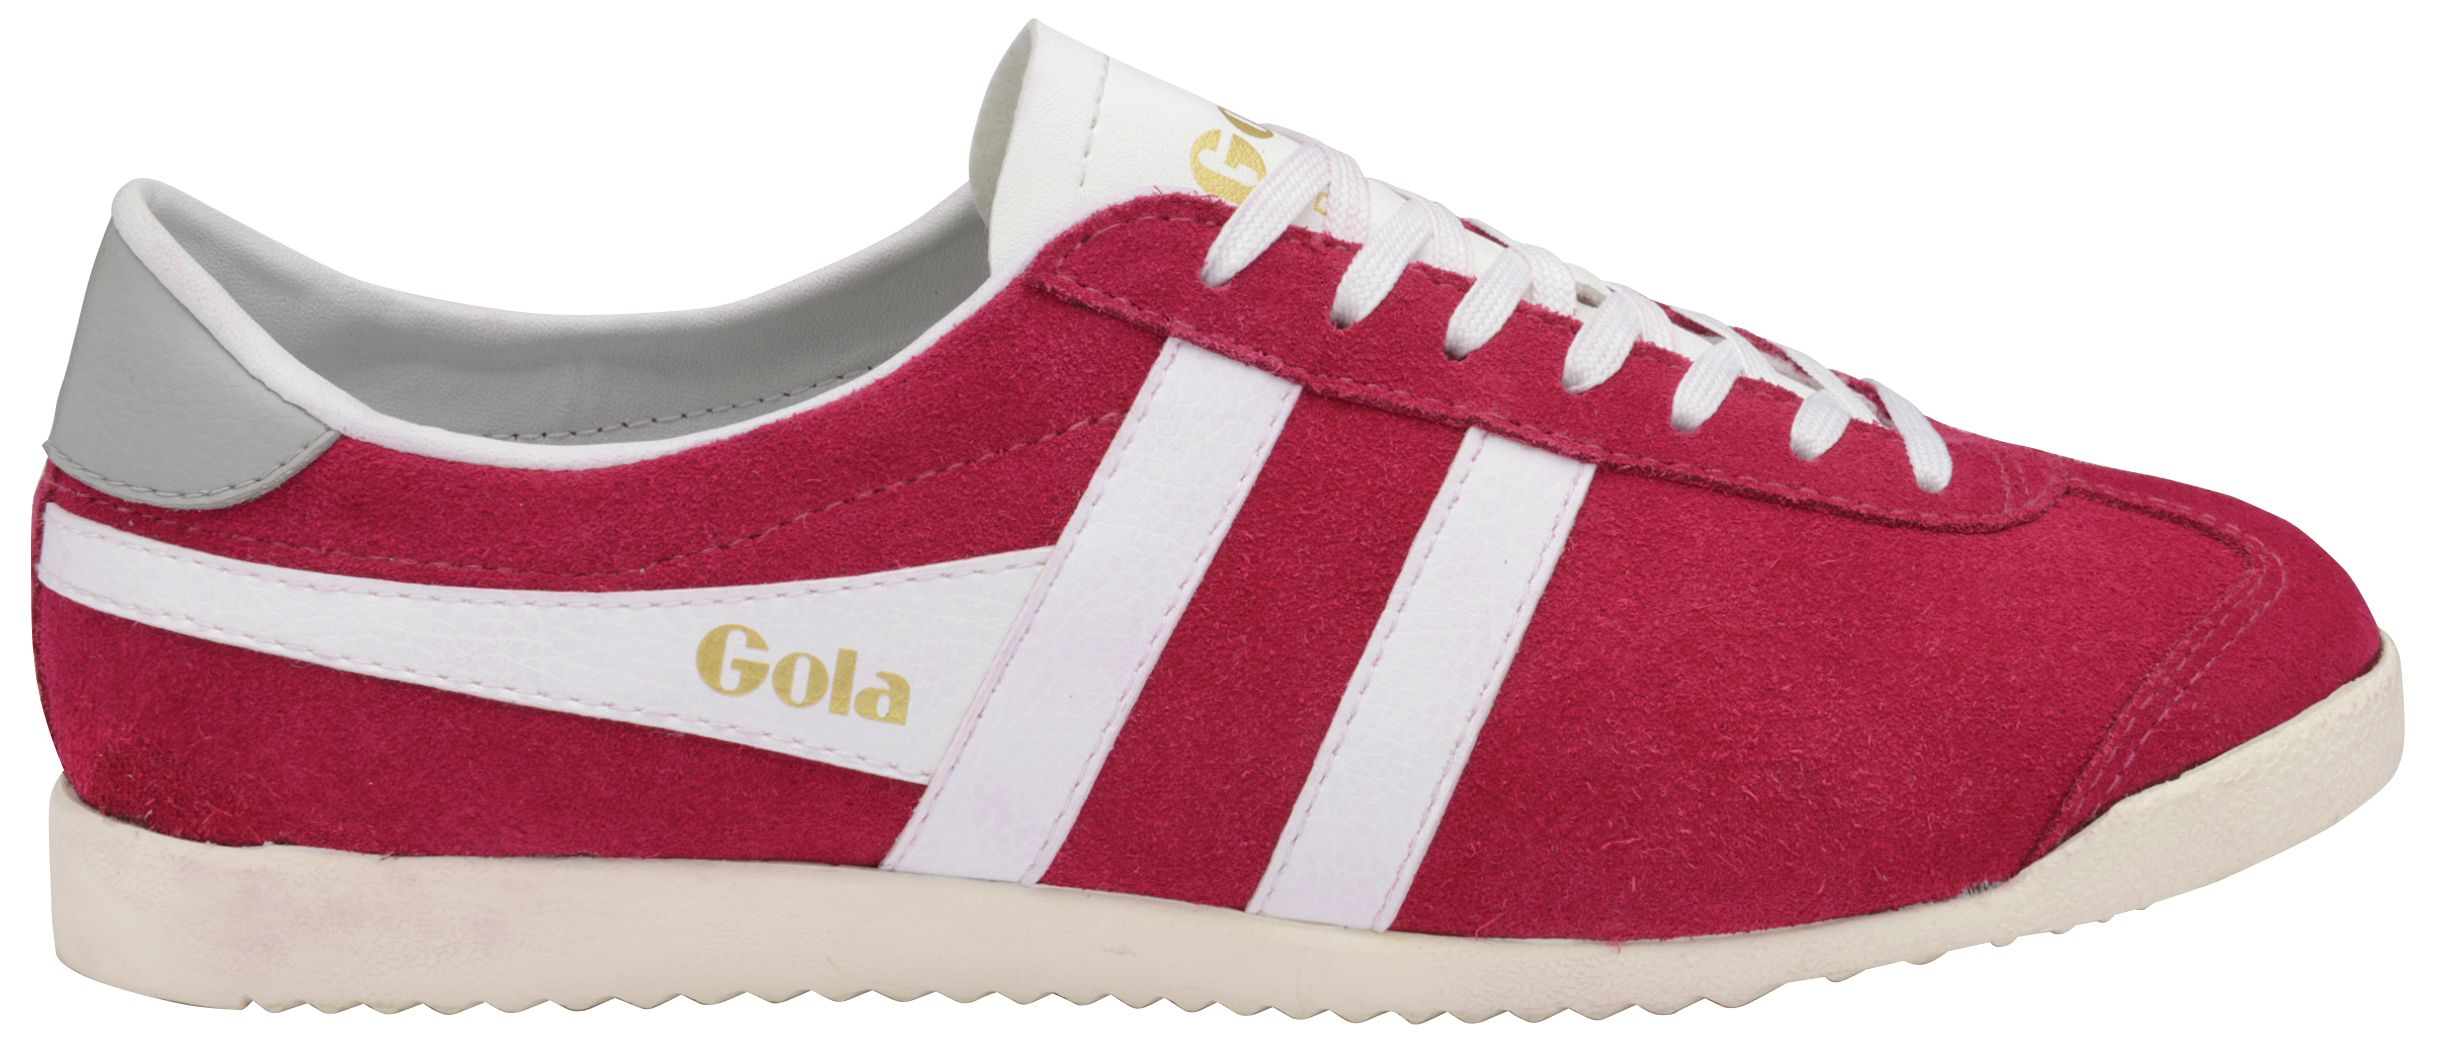 Gola Gola Bullet suede lace up trainers, Fuchsia